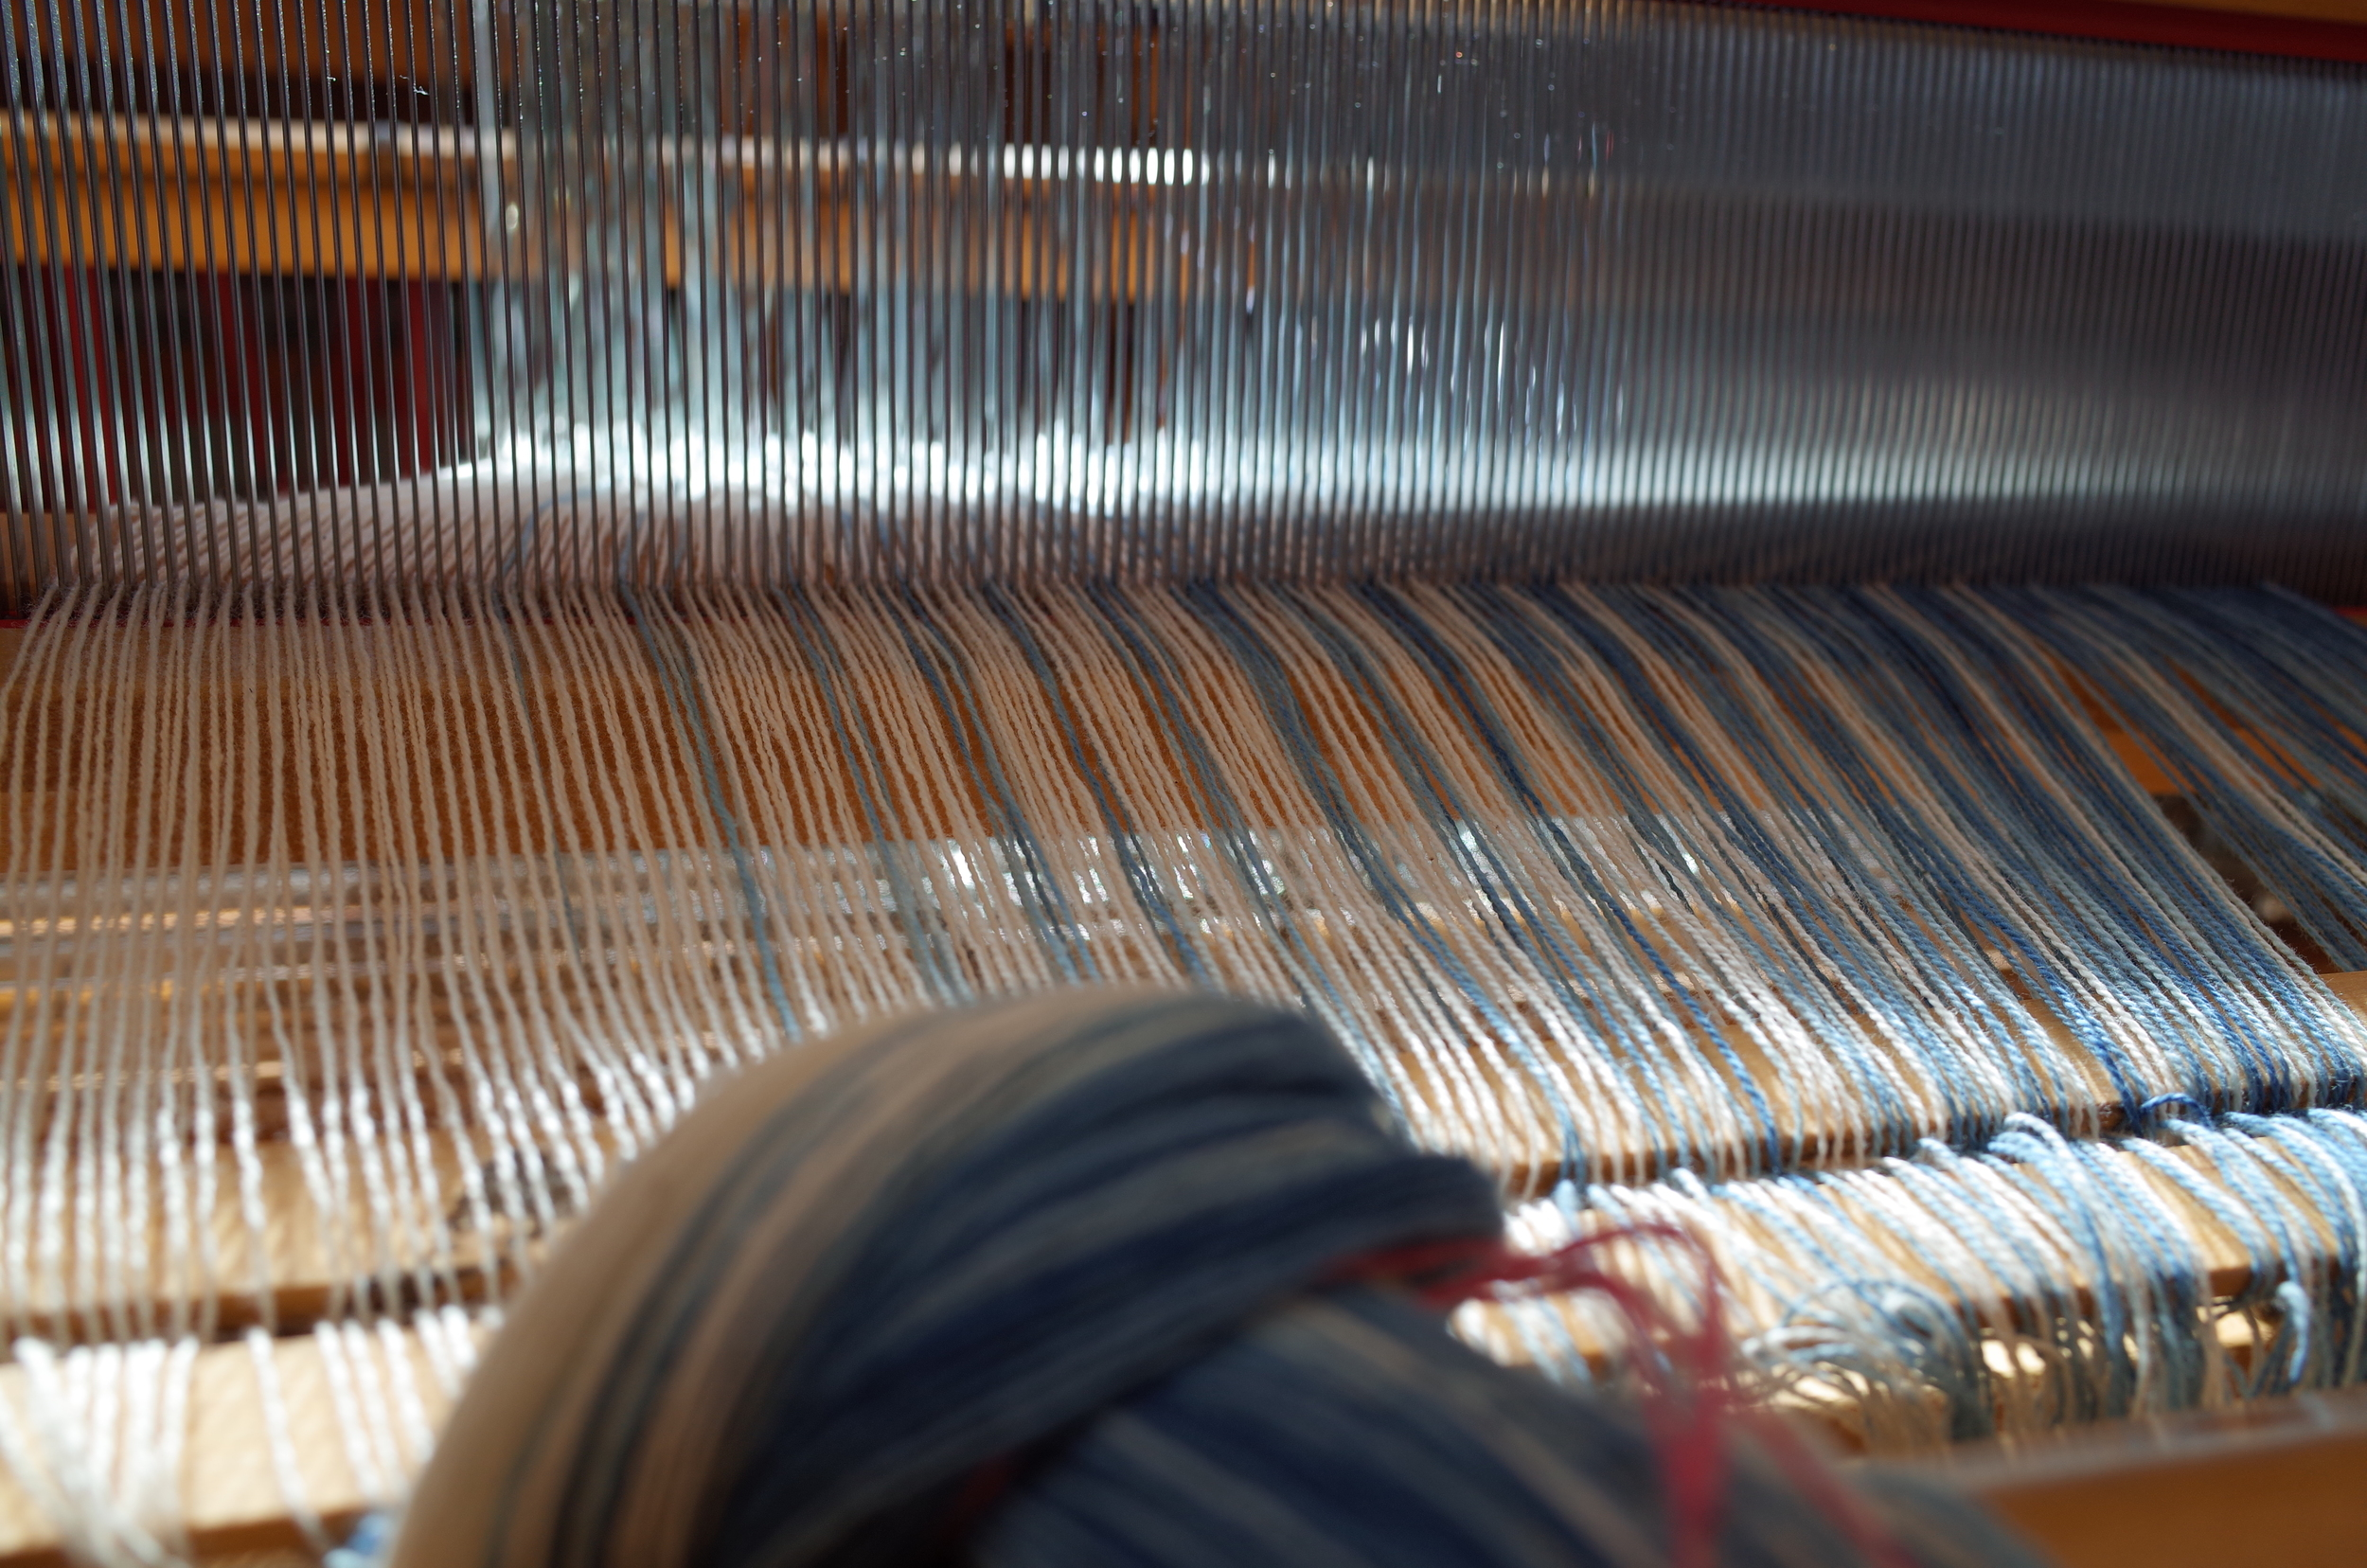 Time to begin winding the warp on!